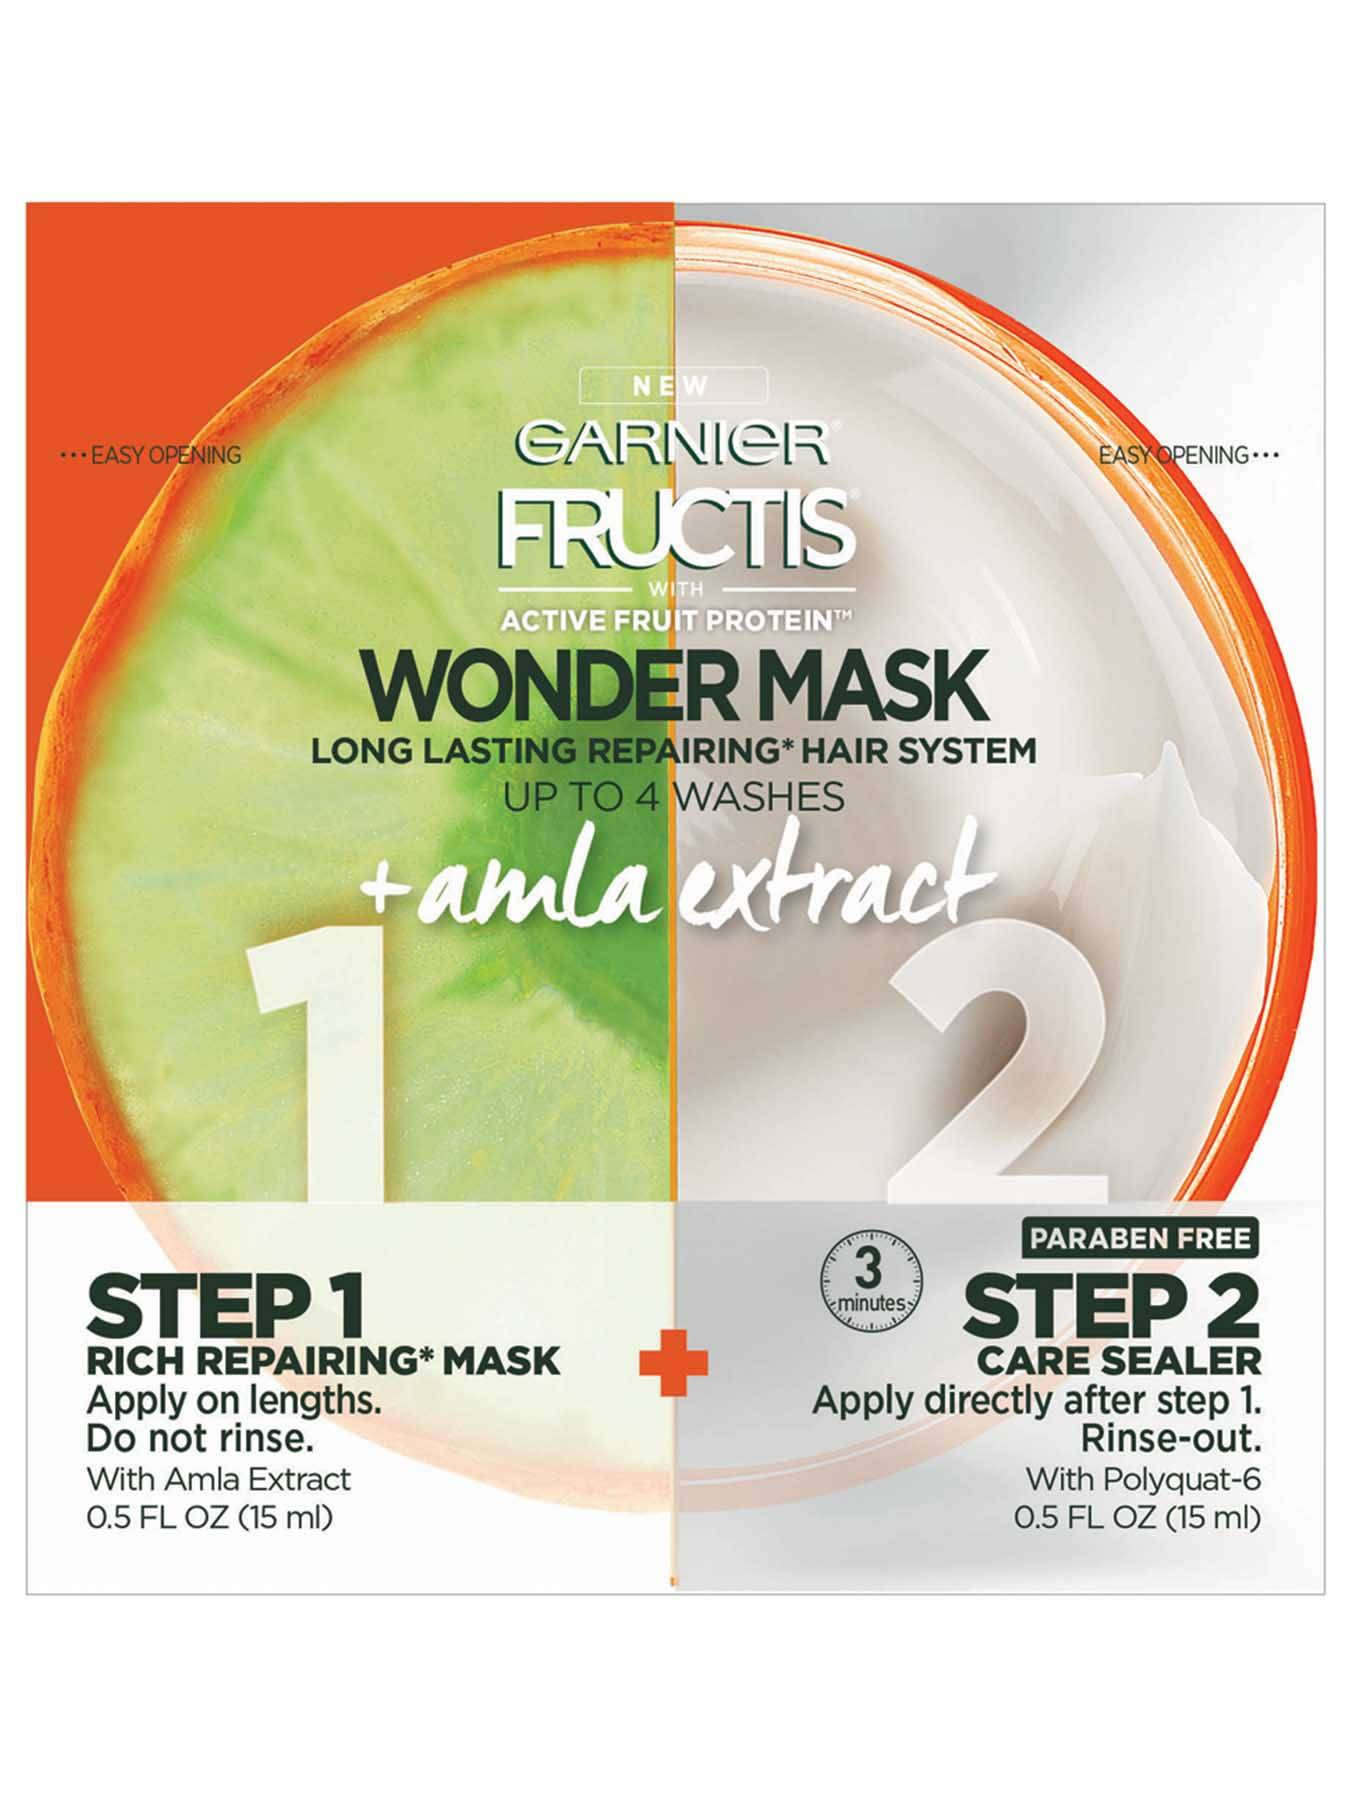 Garnier Fructis Wonder Mask Fruit Protein Alma Extract Front